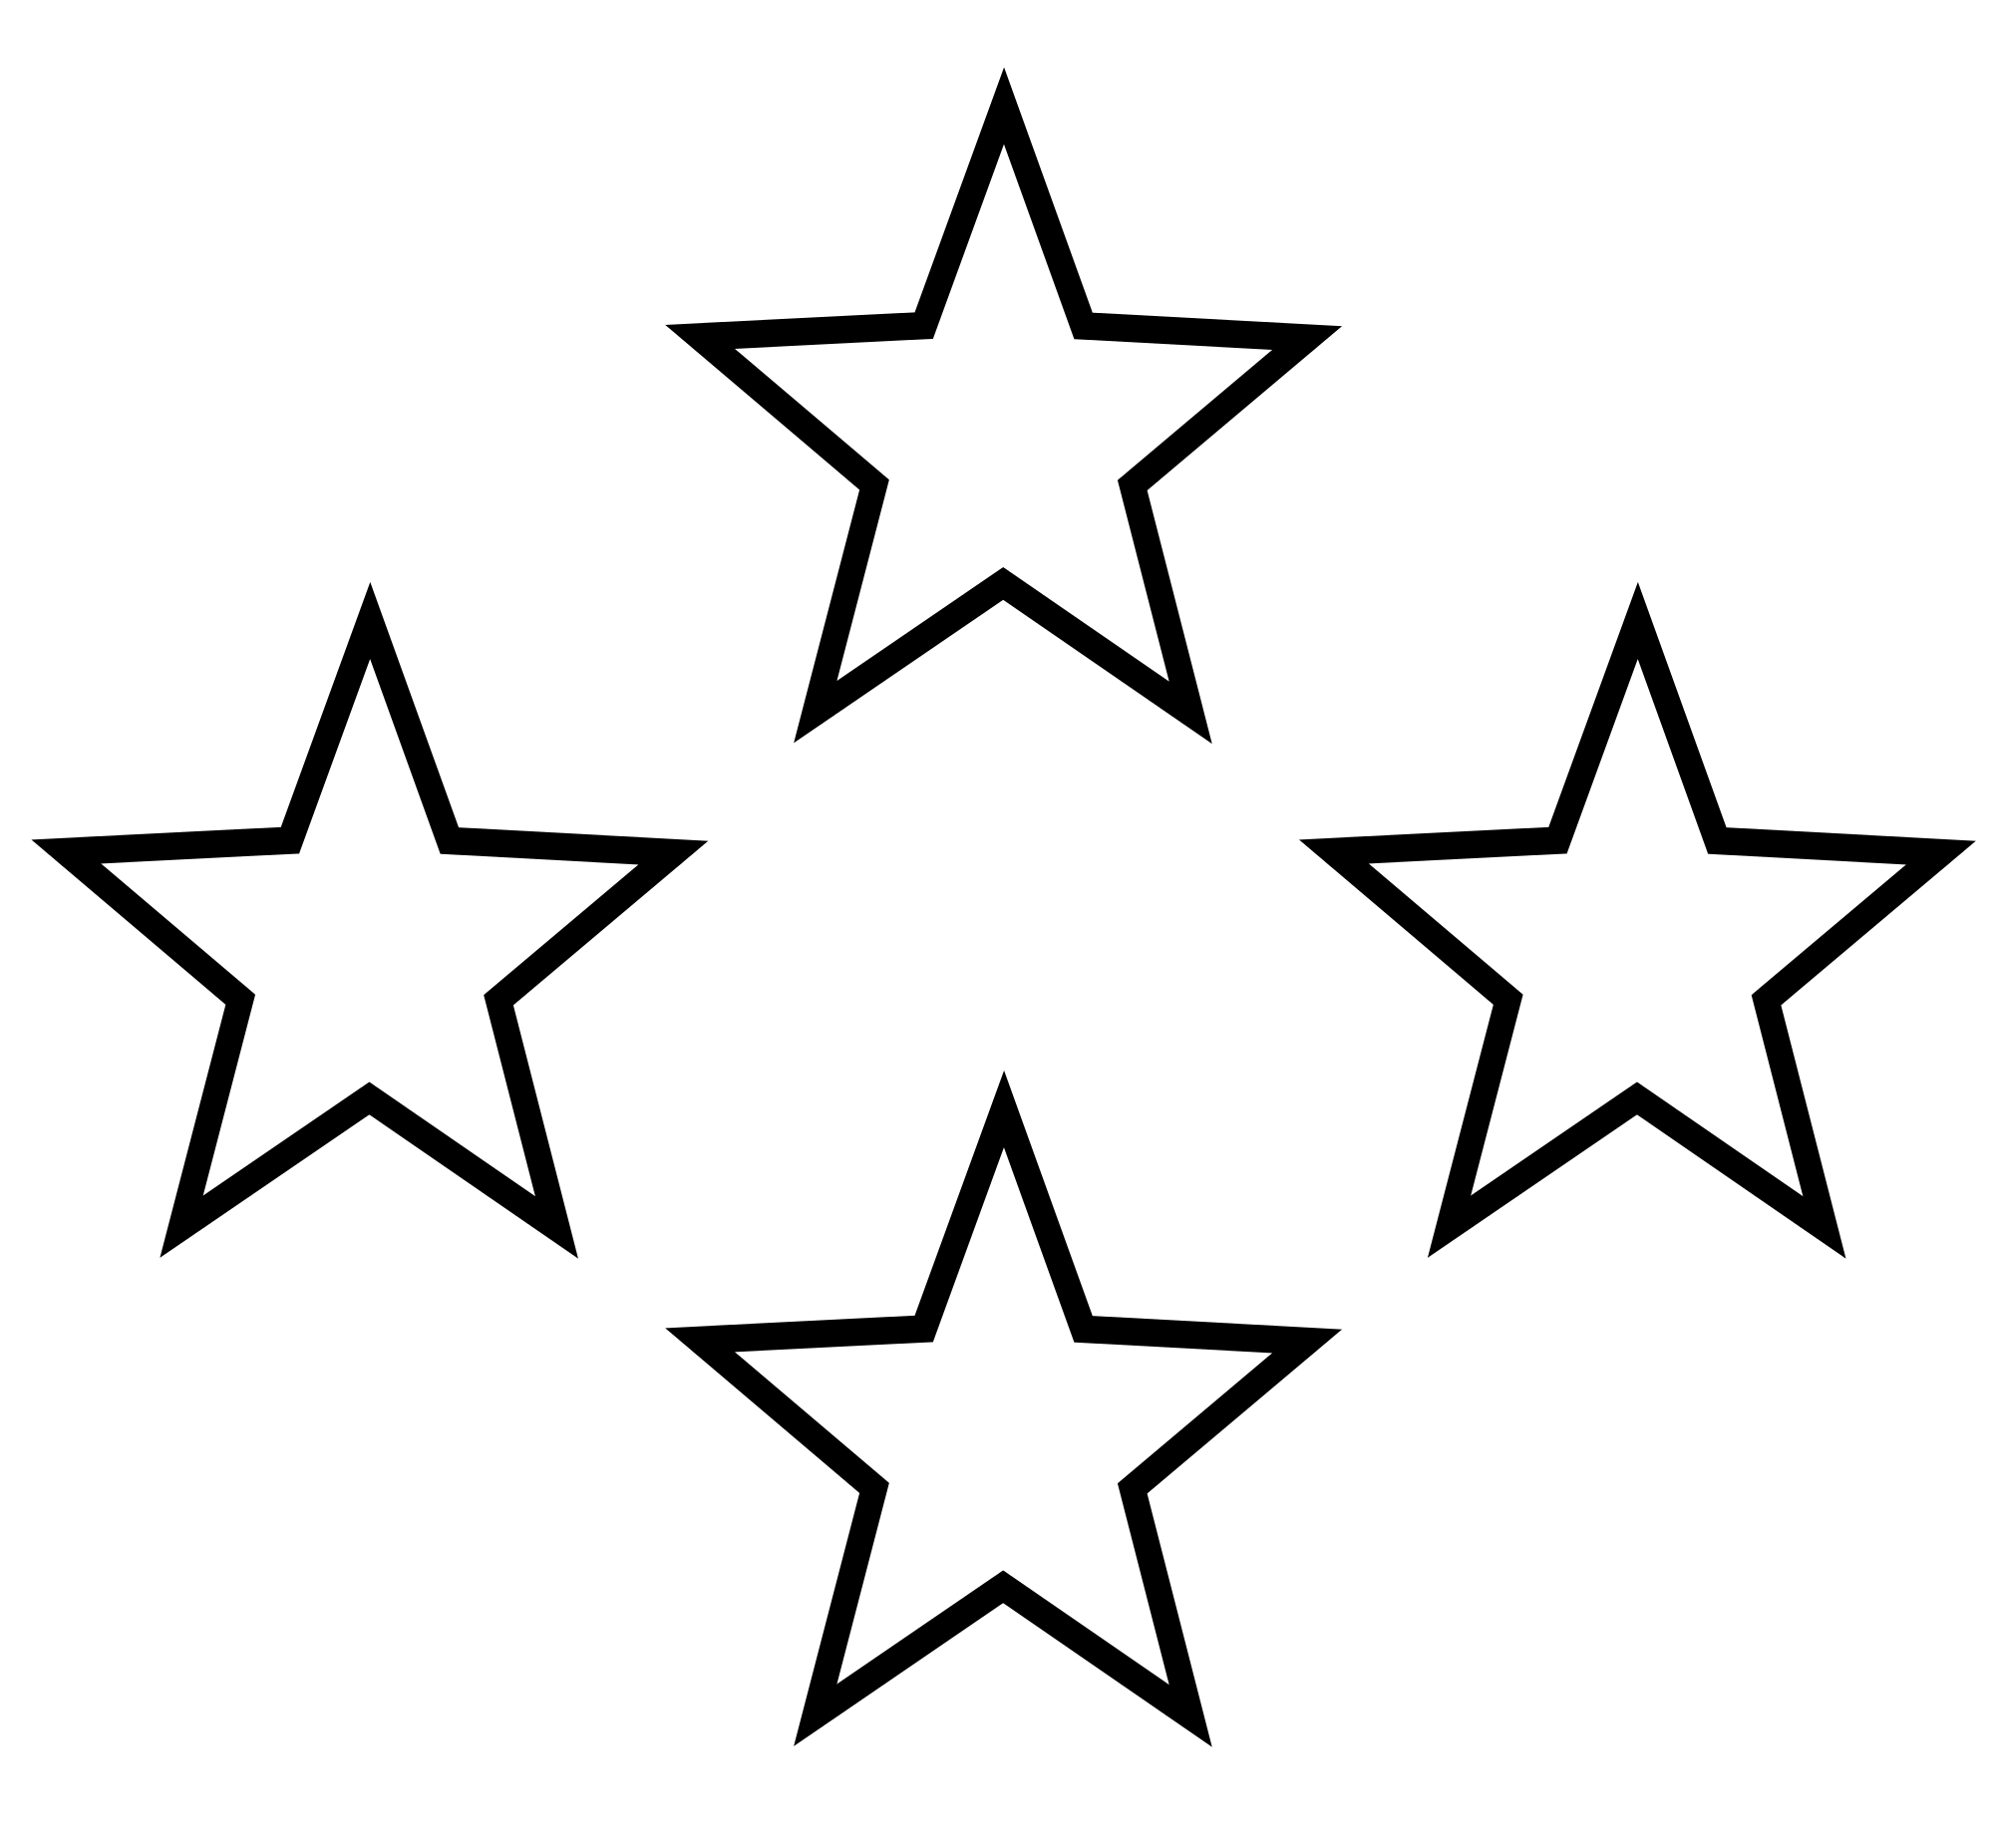 Star background clipart black and white jpg library File:White Stars 4.svg - Wikimedia Commons jpg library